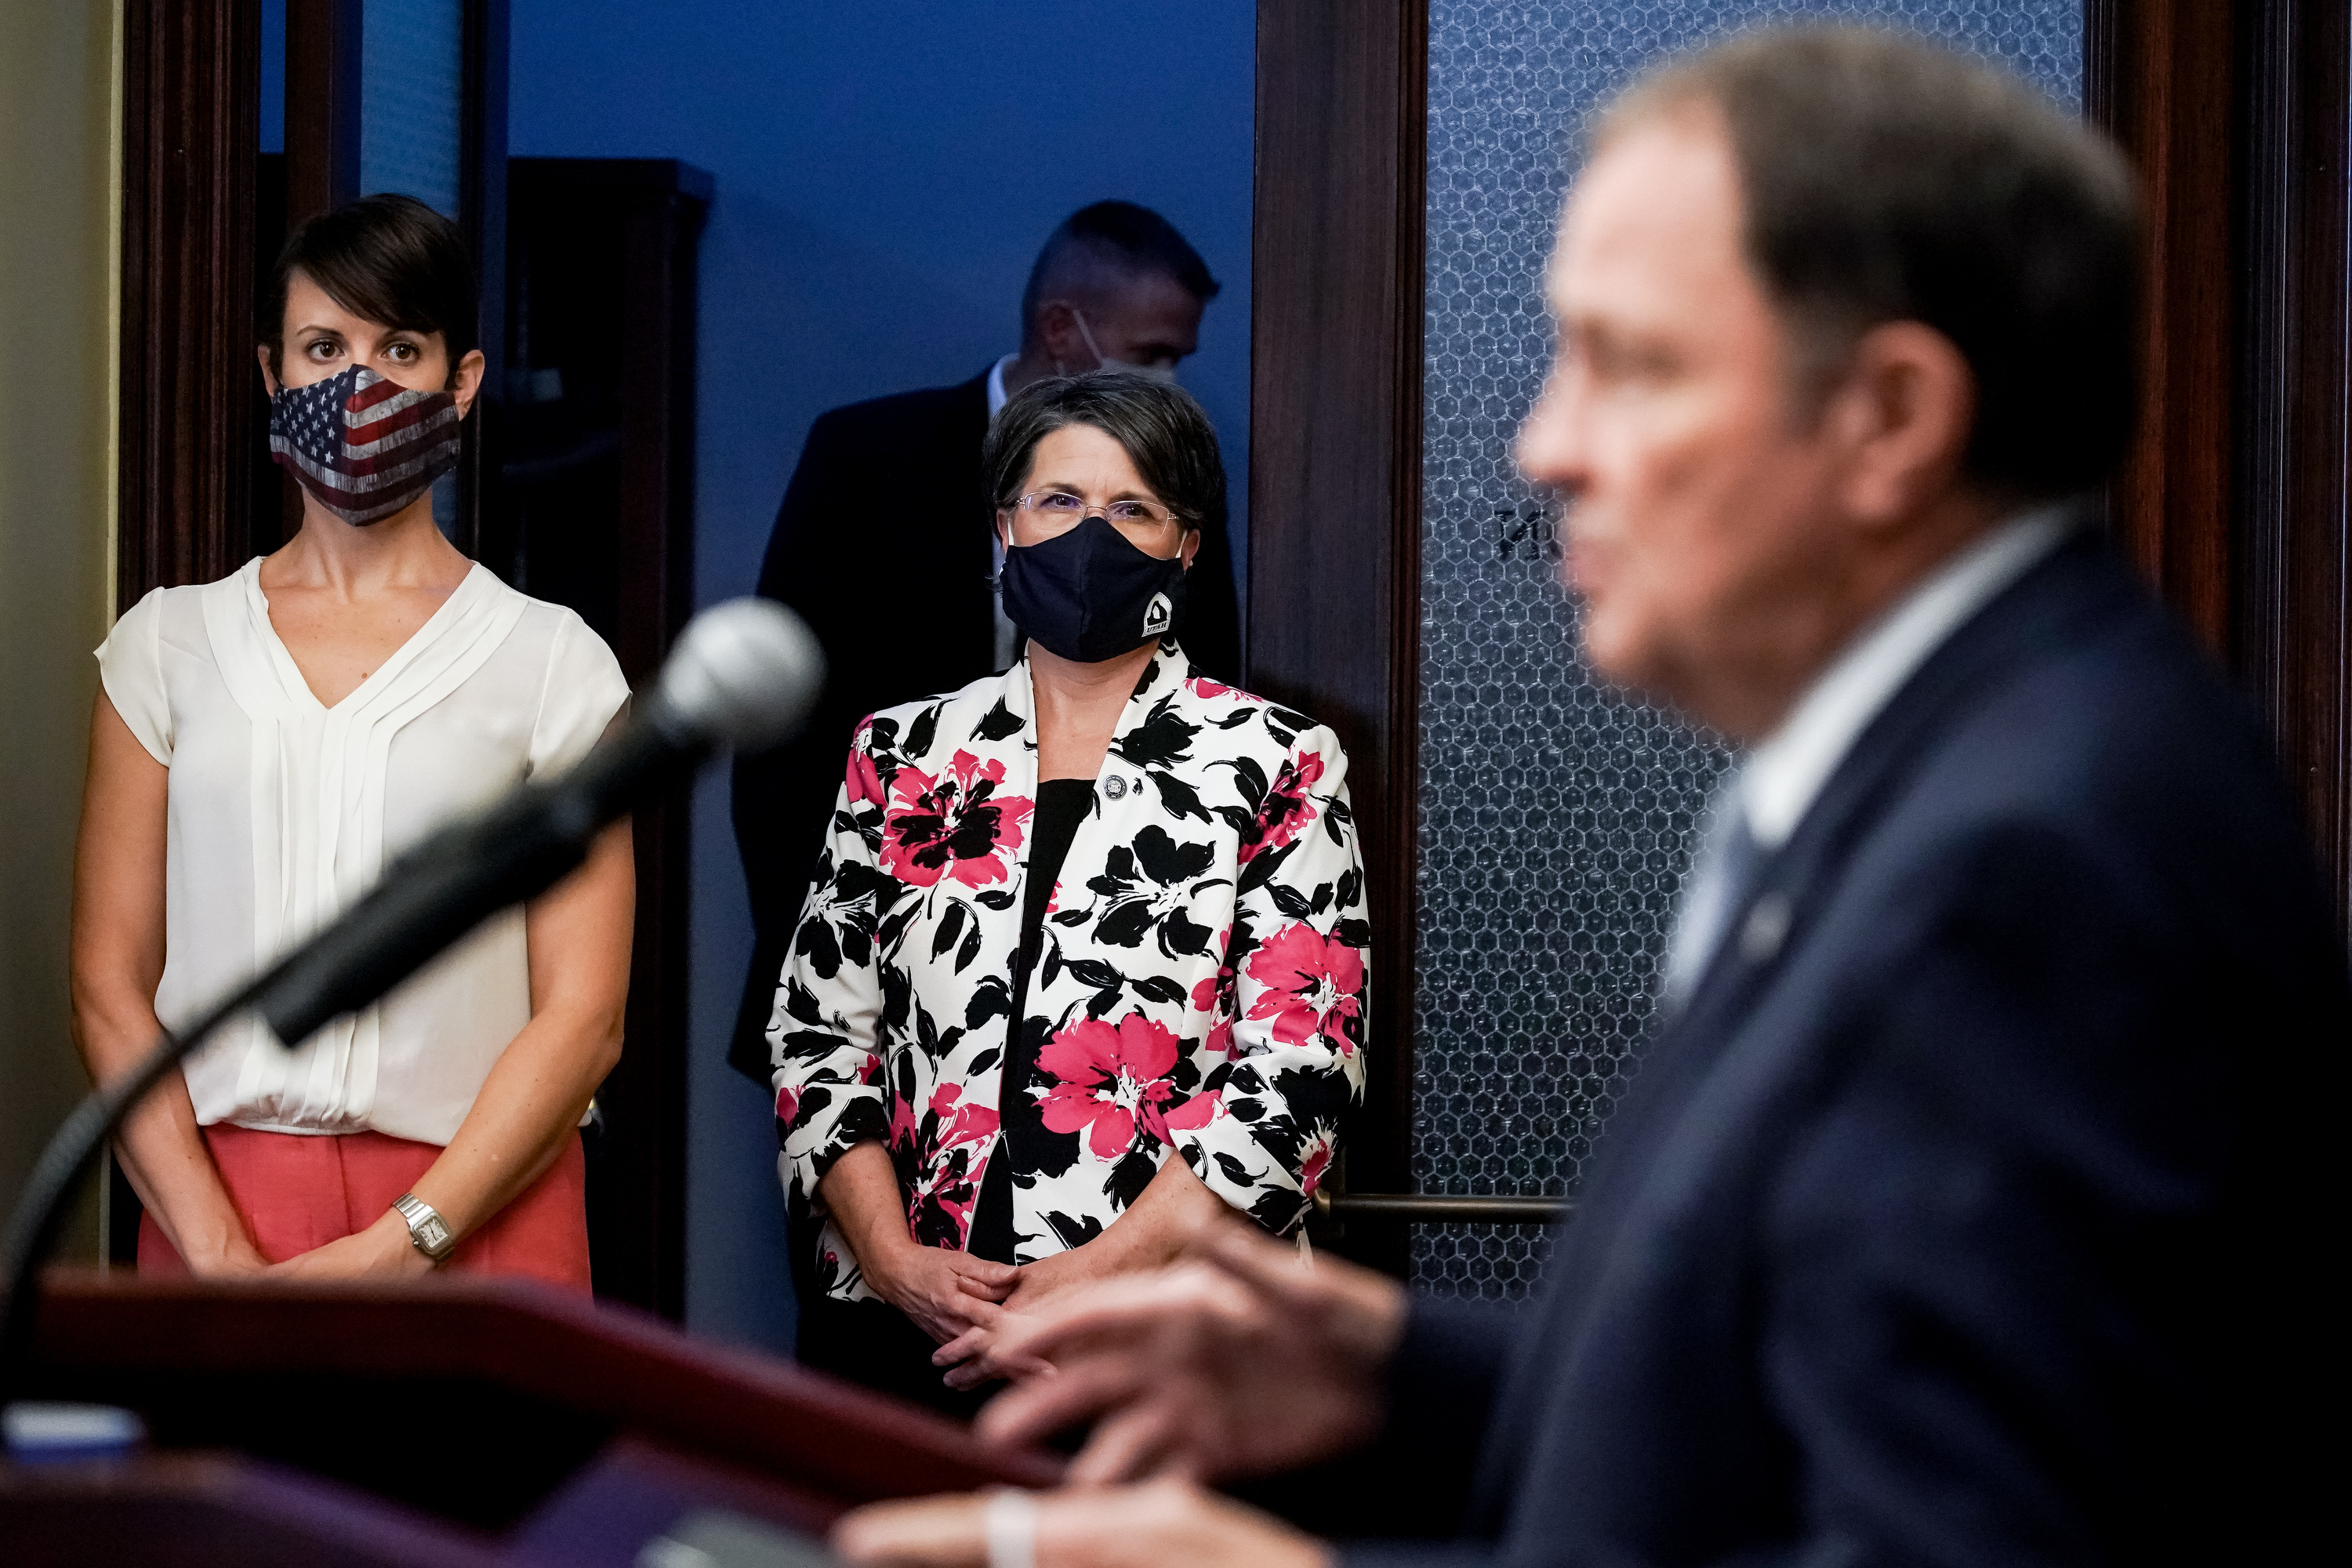 State epidemiologist Dr. Angela Dunn, left, and Tami Pyfer, education adviser to Gov. Gary Herbert, center, listen as Herbert speaks during a briefing about the state's response to the COVID-19 pandemic at the Capitol in Salt Lake City on Thursday, Aug. 6, 2020.